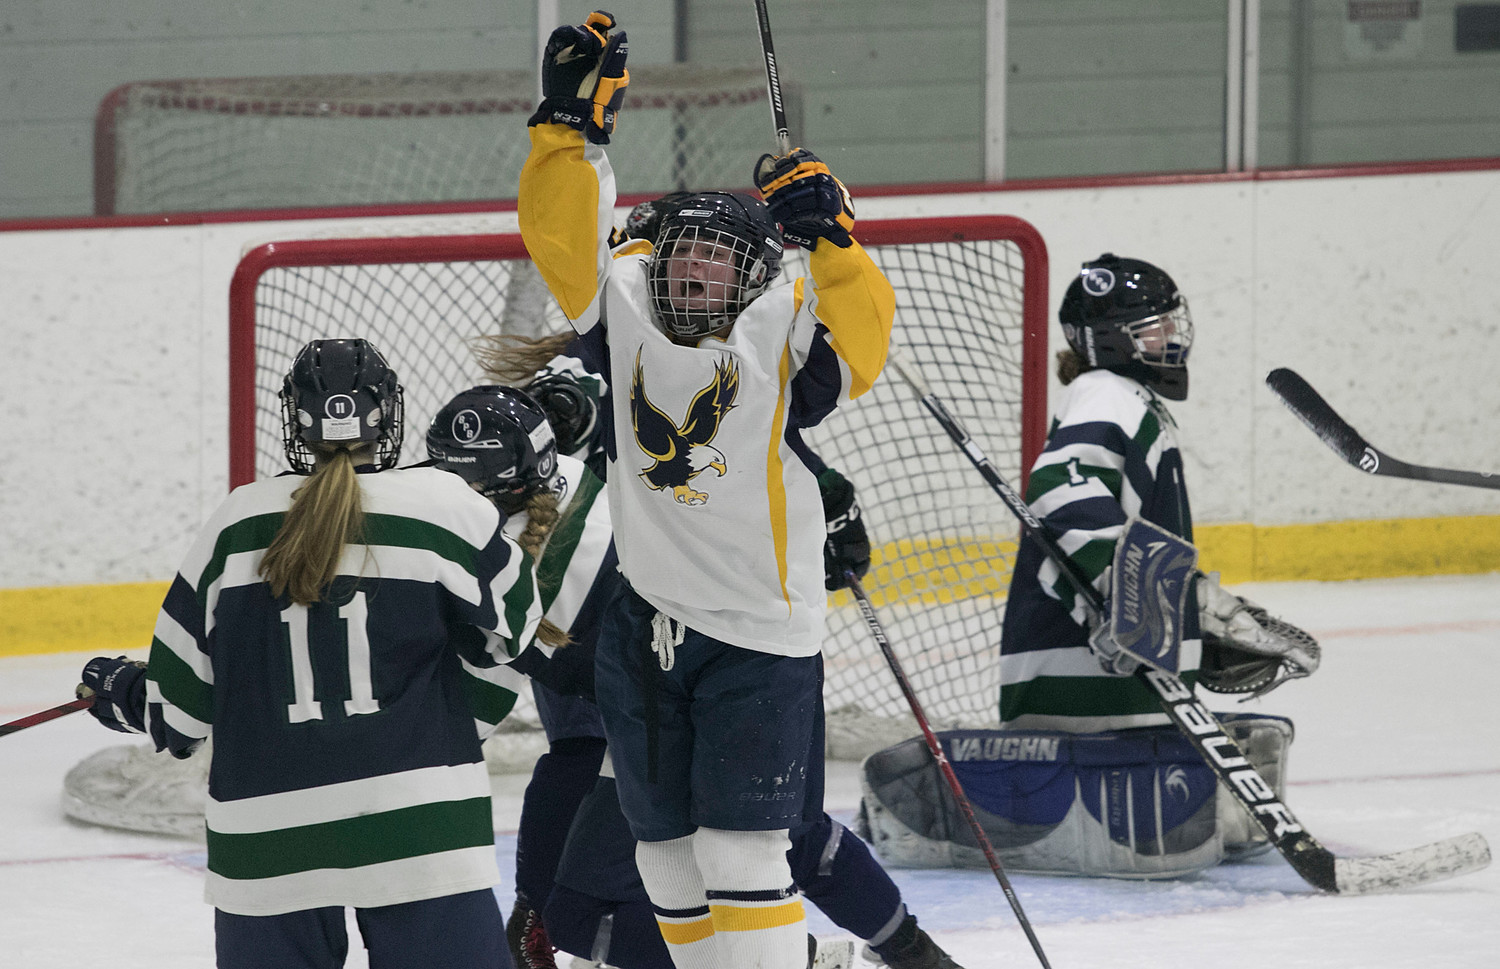 East Bay senior forward Mary Arkins celebrates after tying the game 2-2 in the third period.